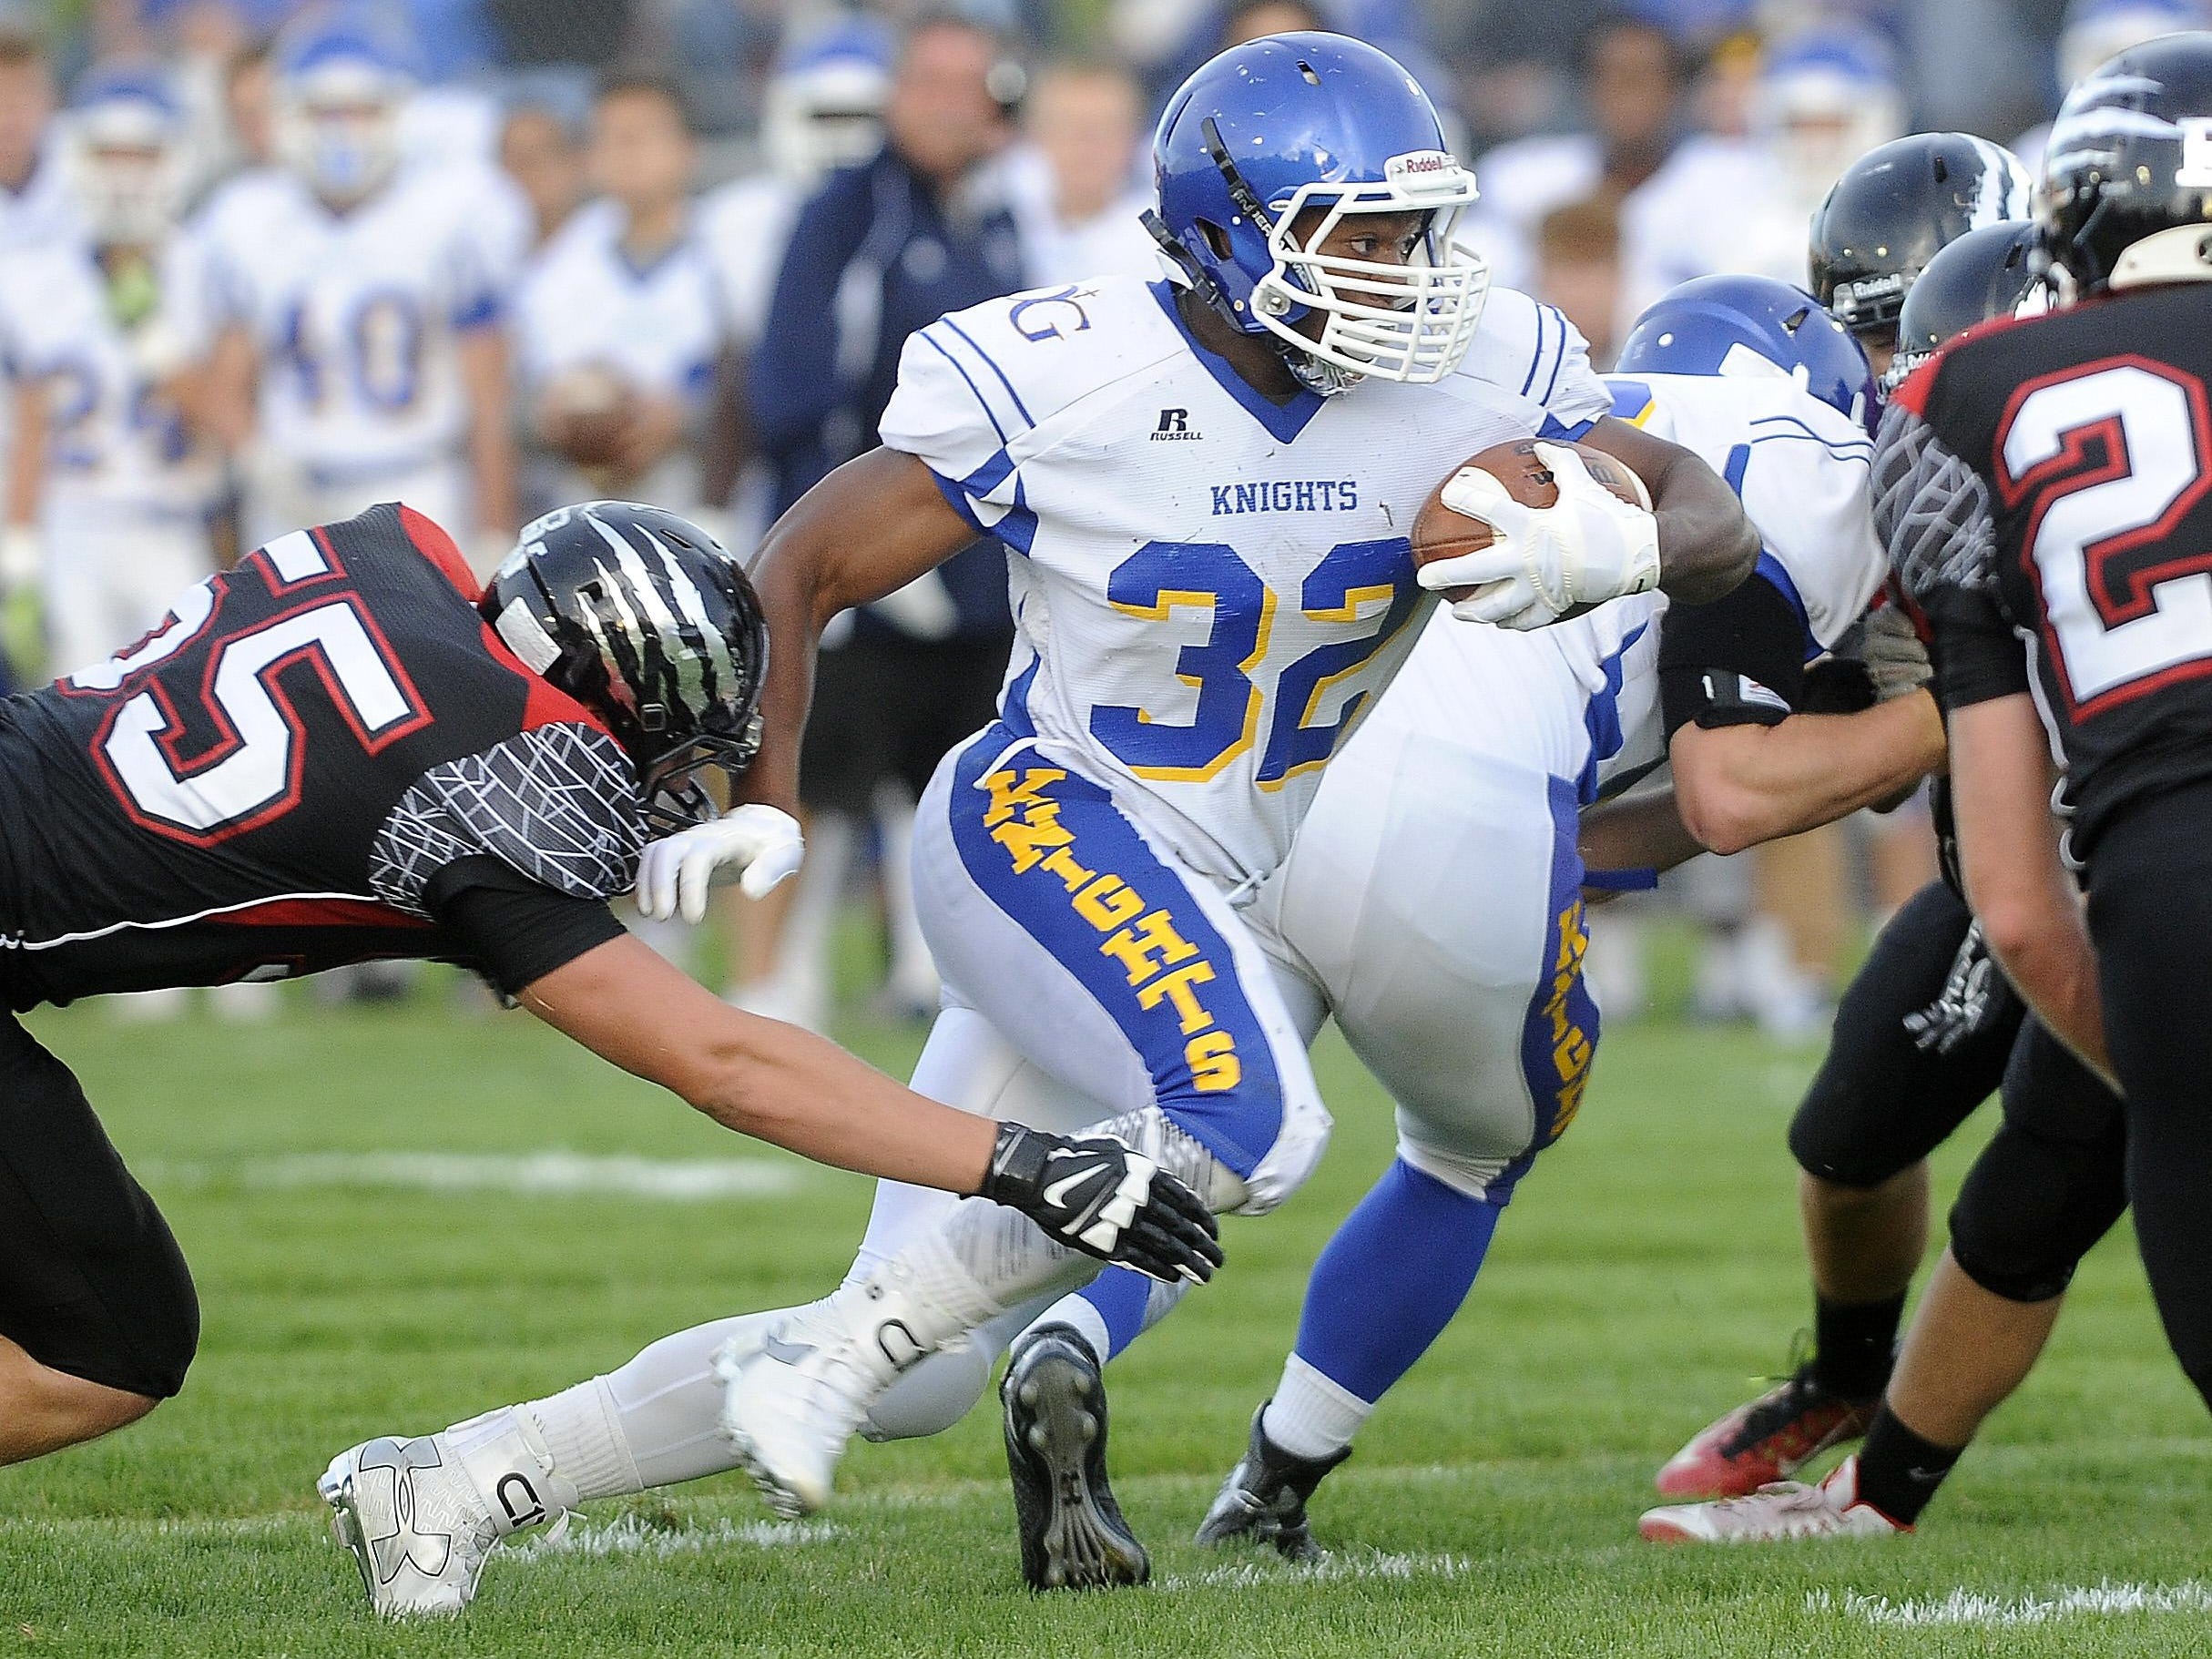 Dodi Makwinja runs against Brandon Valley in September. Makwinja rushed 15 times for 128 yards and two scores in the Knights' 42-10 win over Watertown last Friday.